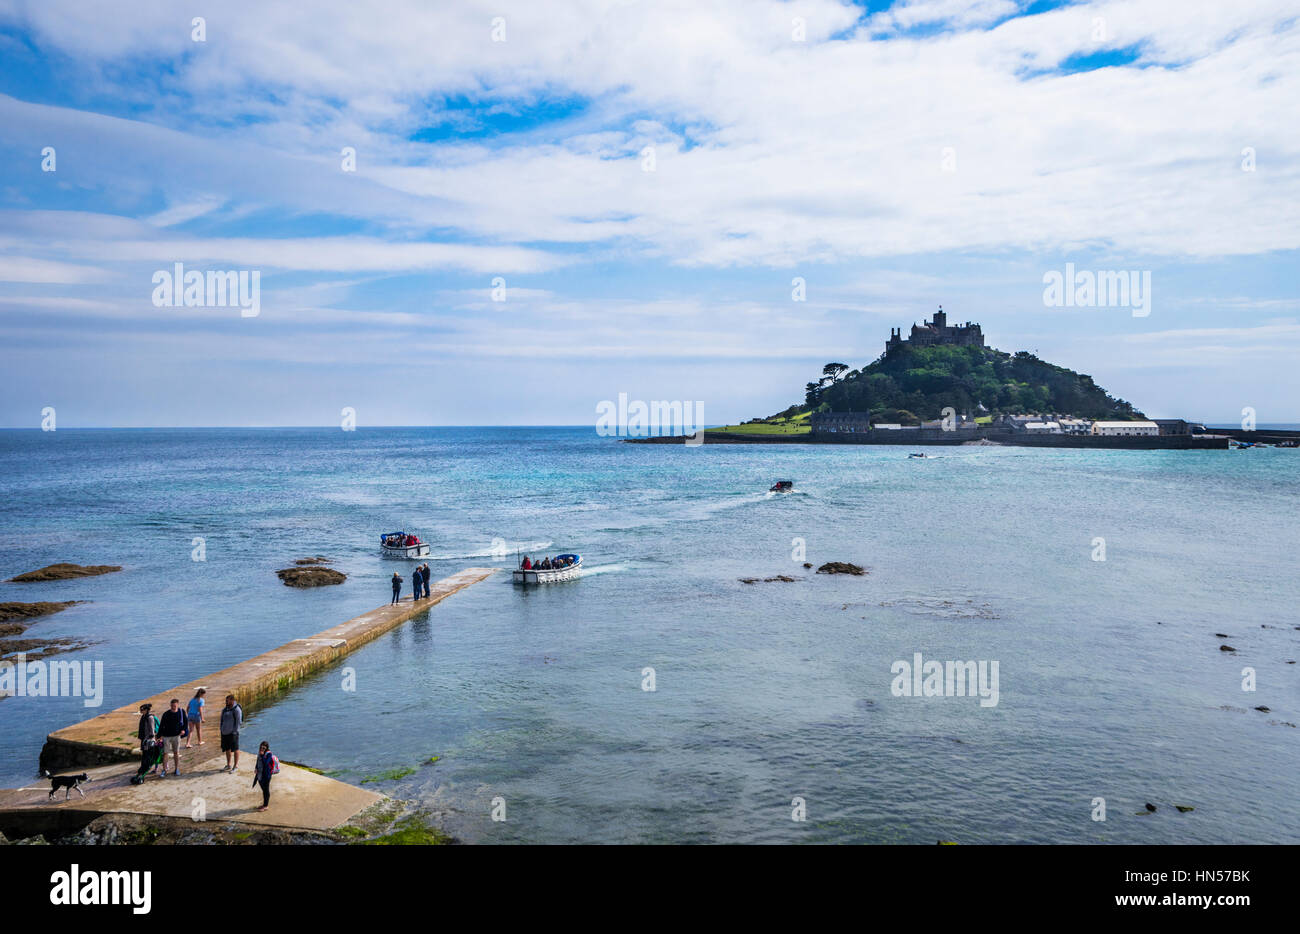 United Kingdom, South West England, Cornwall, Marazian, launches freey visitors to the tidal island of  St. Michael's - Stock Image